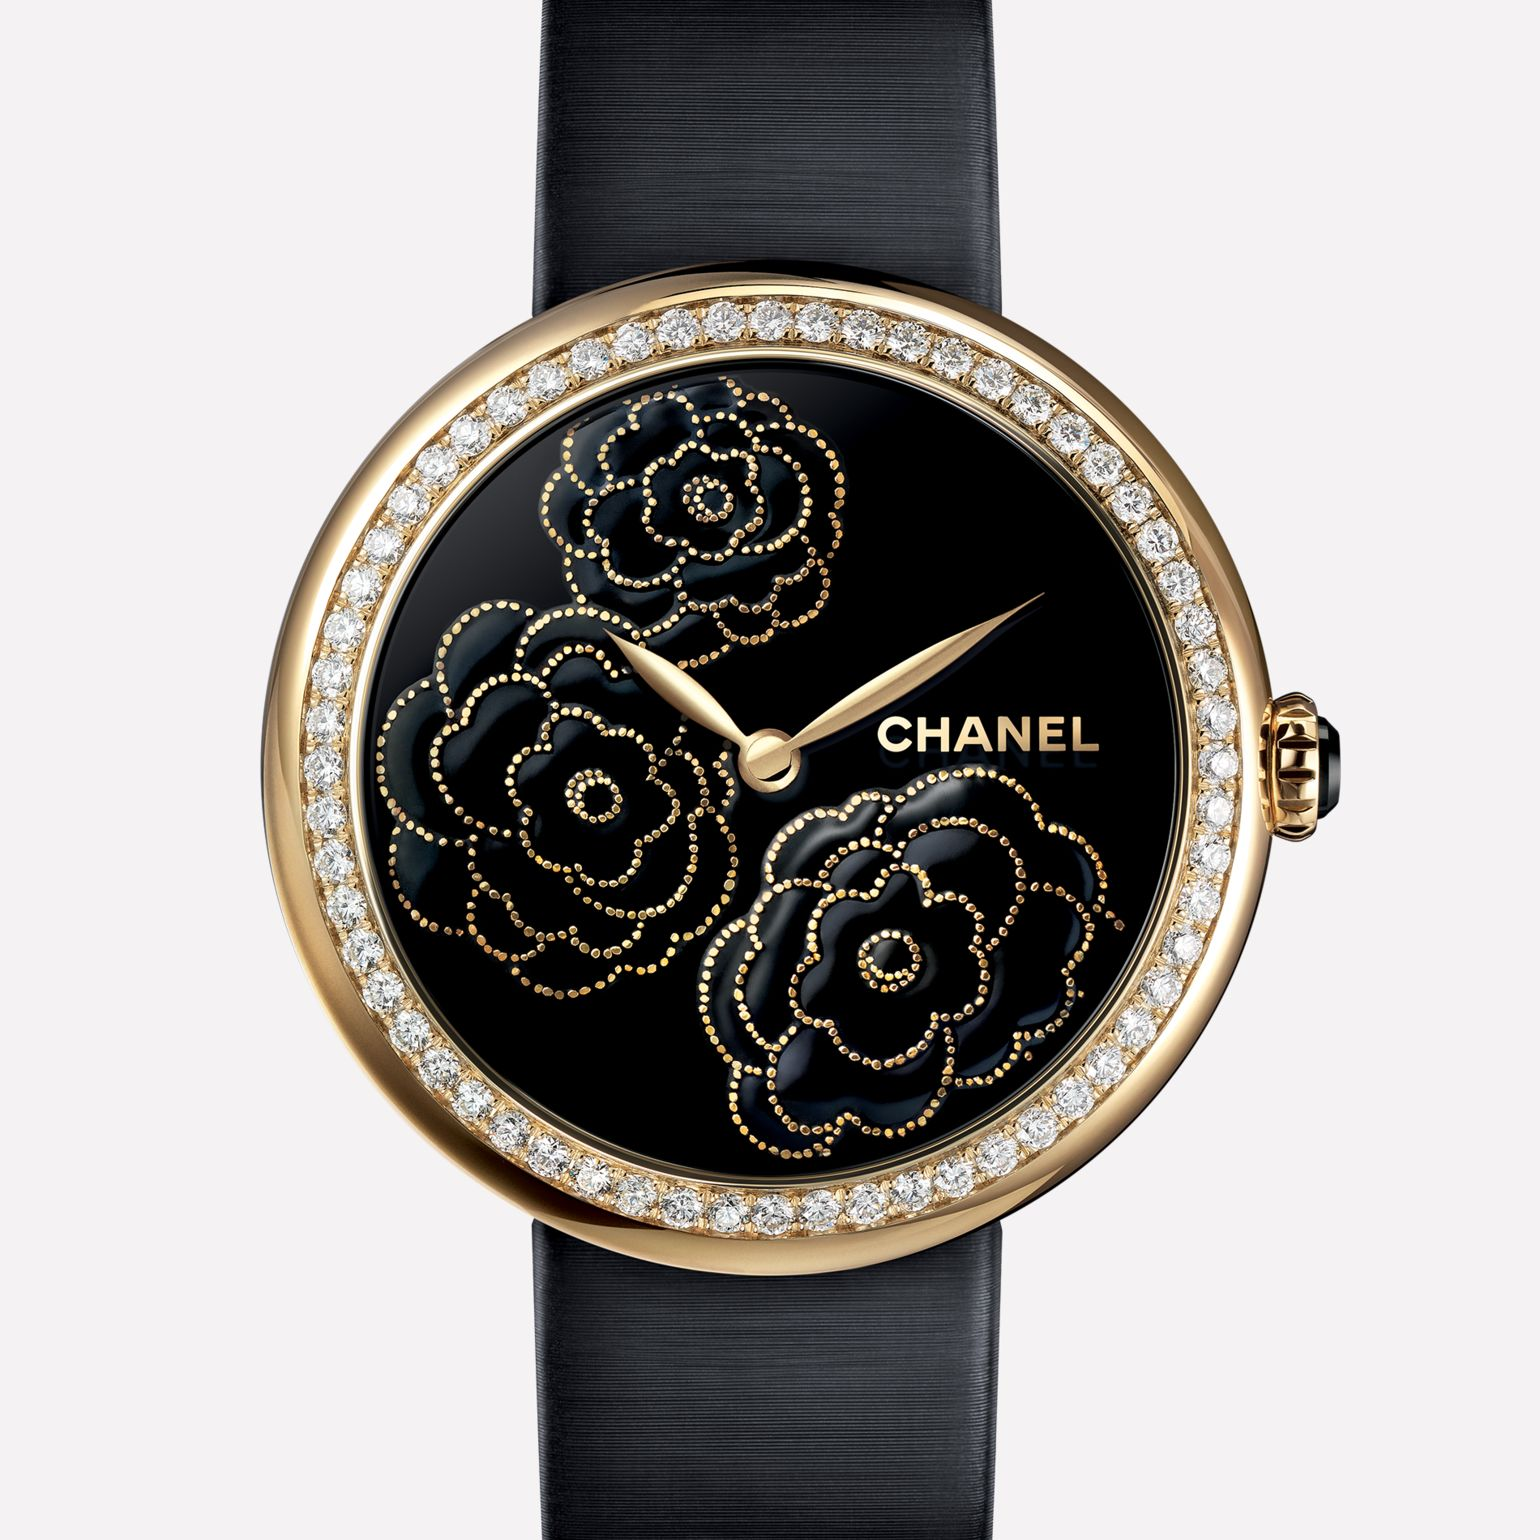 Mademoiselle Privé Watch Camellias in yellow gold, black lacquer dial - Maki-e technique